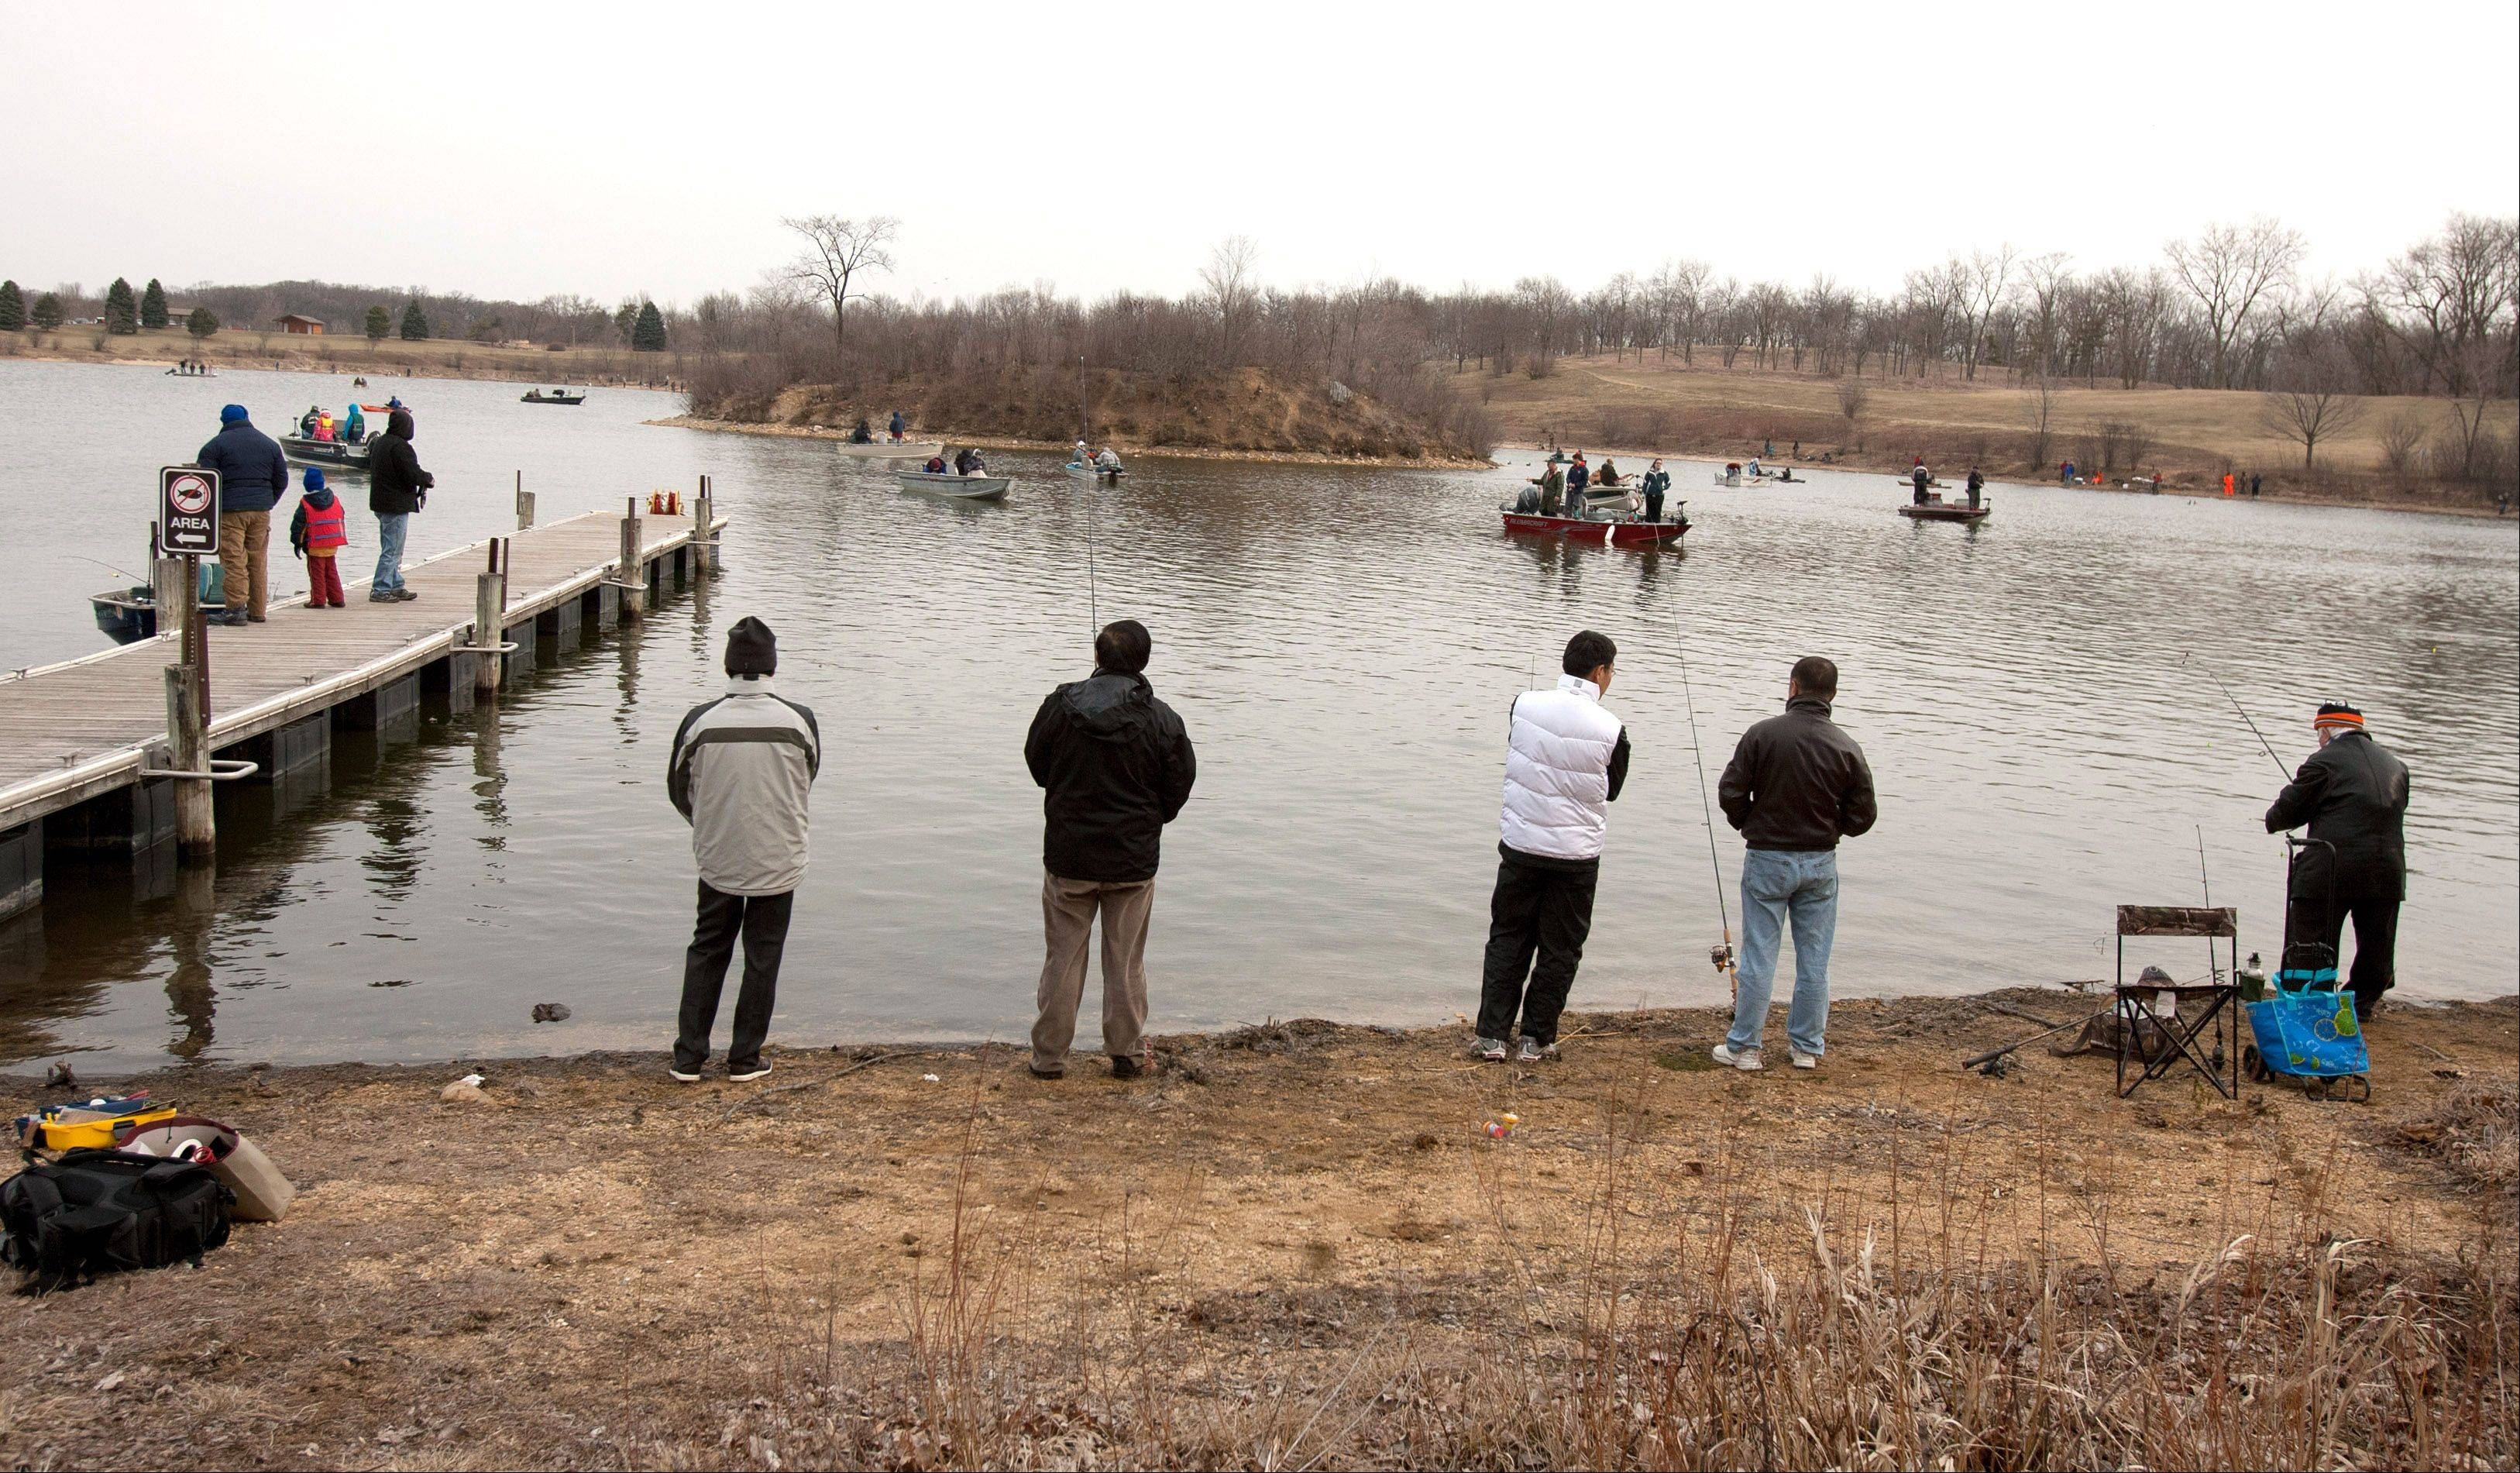 The opening day of trout season along the shores of Silver Lake at the Blackwell Forest Preserve.